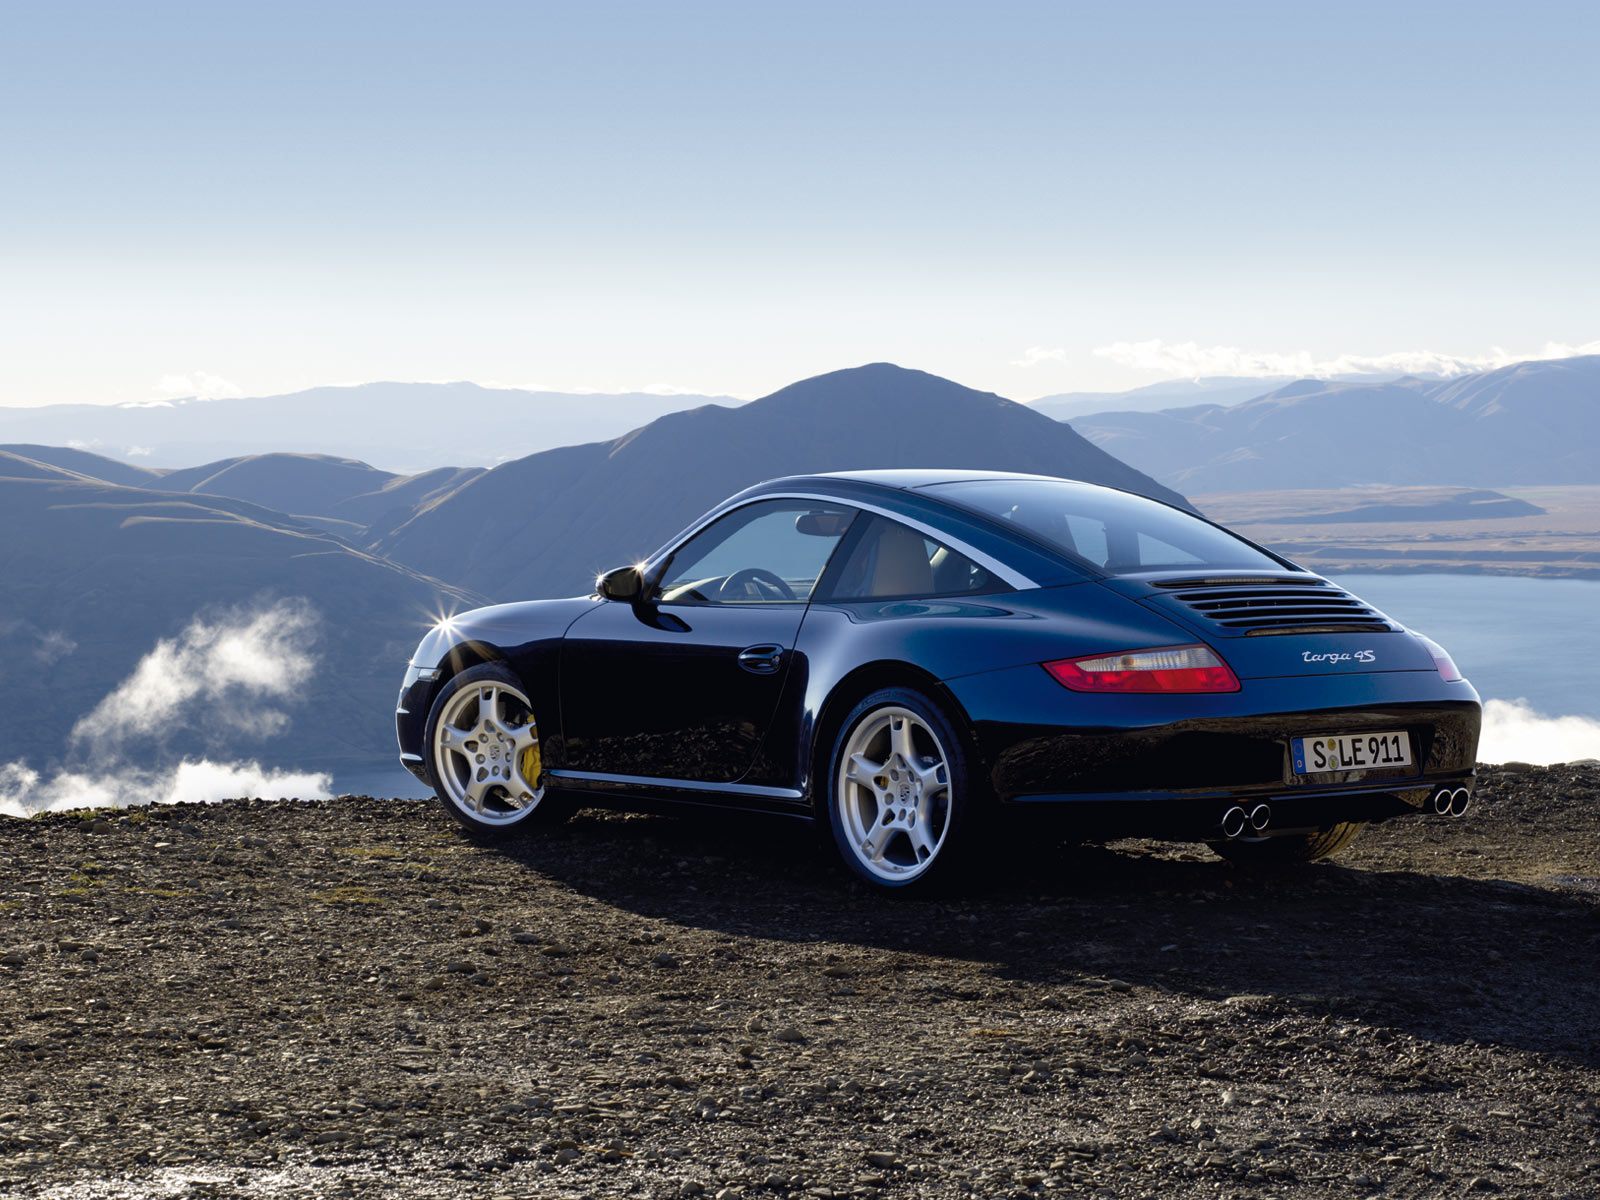 Porsche 997 911 Targa Photos Photogallery With 10 Pics HD Style Wallpapers Download free beautiful images and photos HD [prarshipsa.tk]